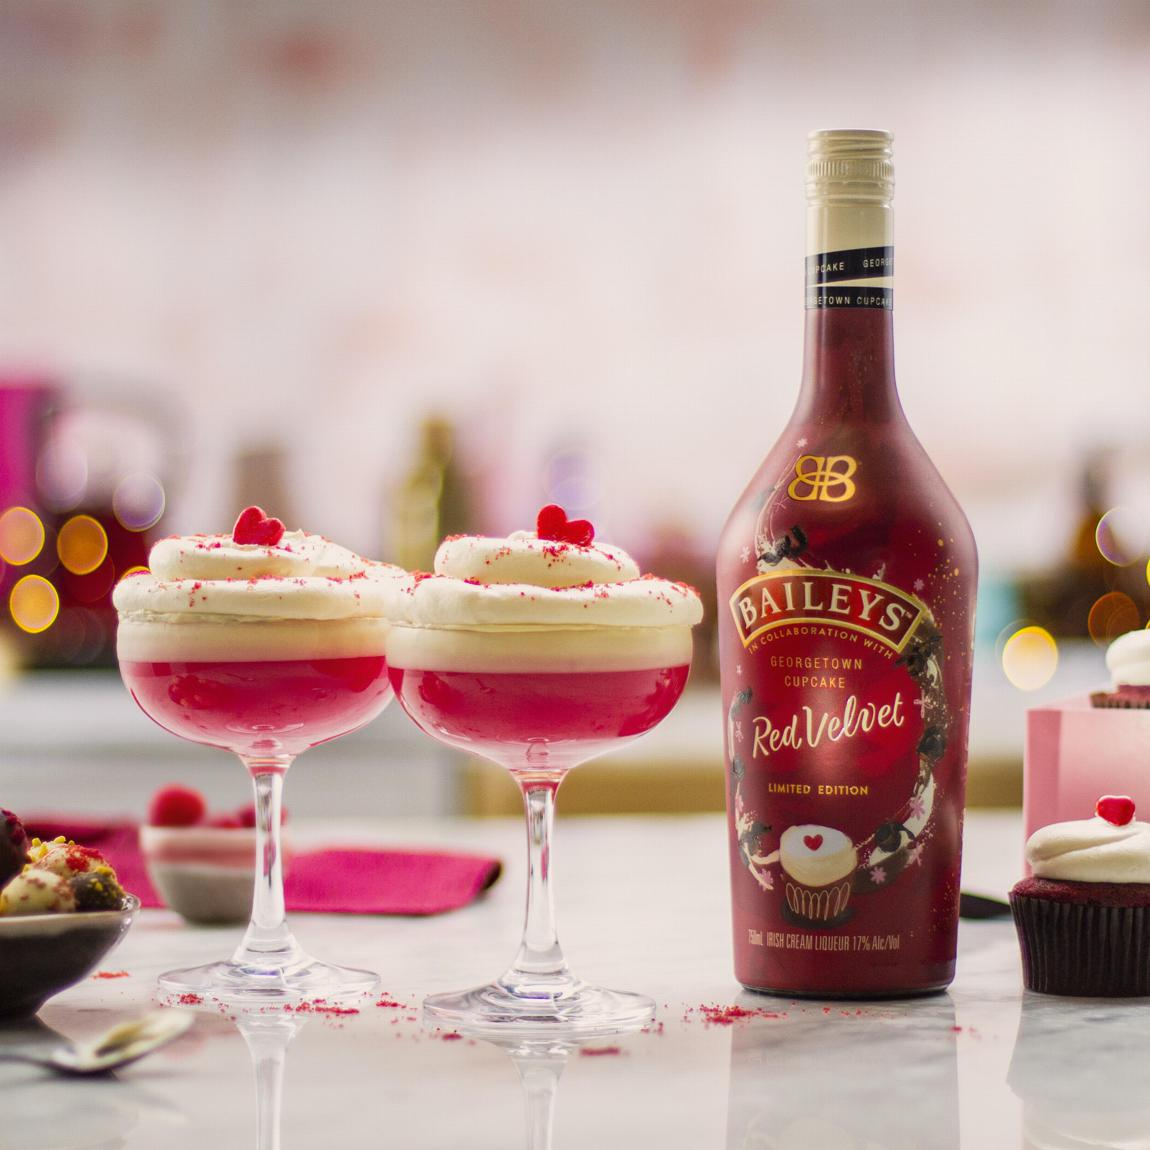 Baileys Red Velvet Cupcake Martini cocktail